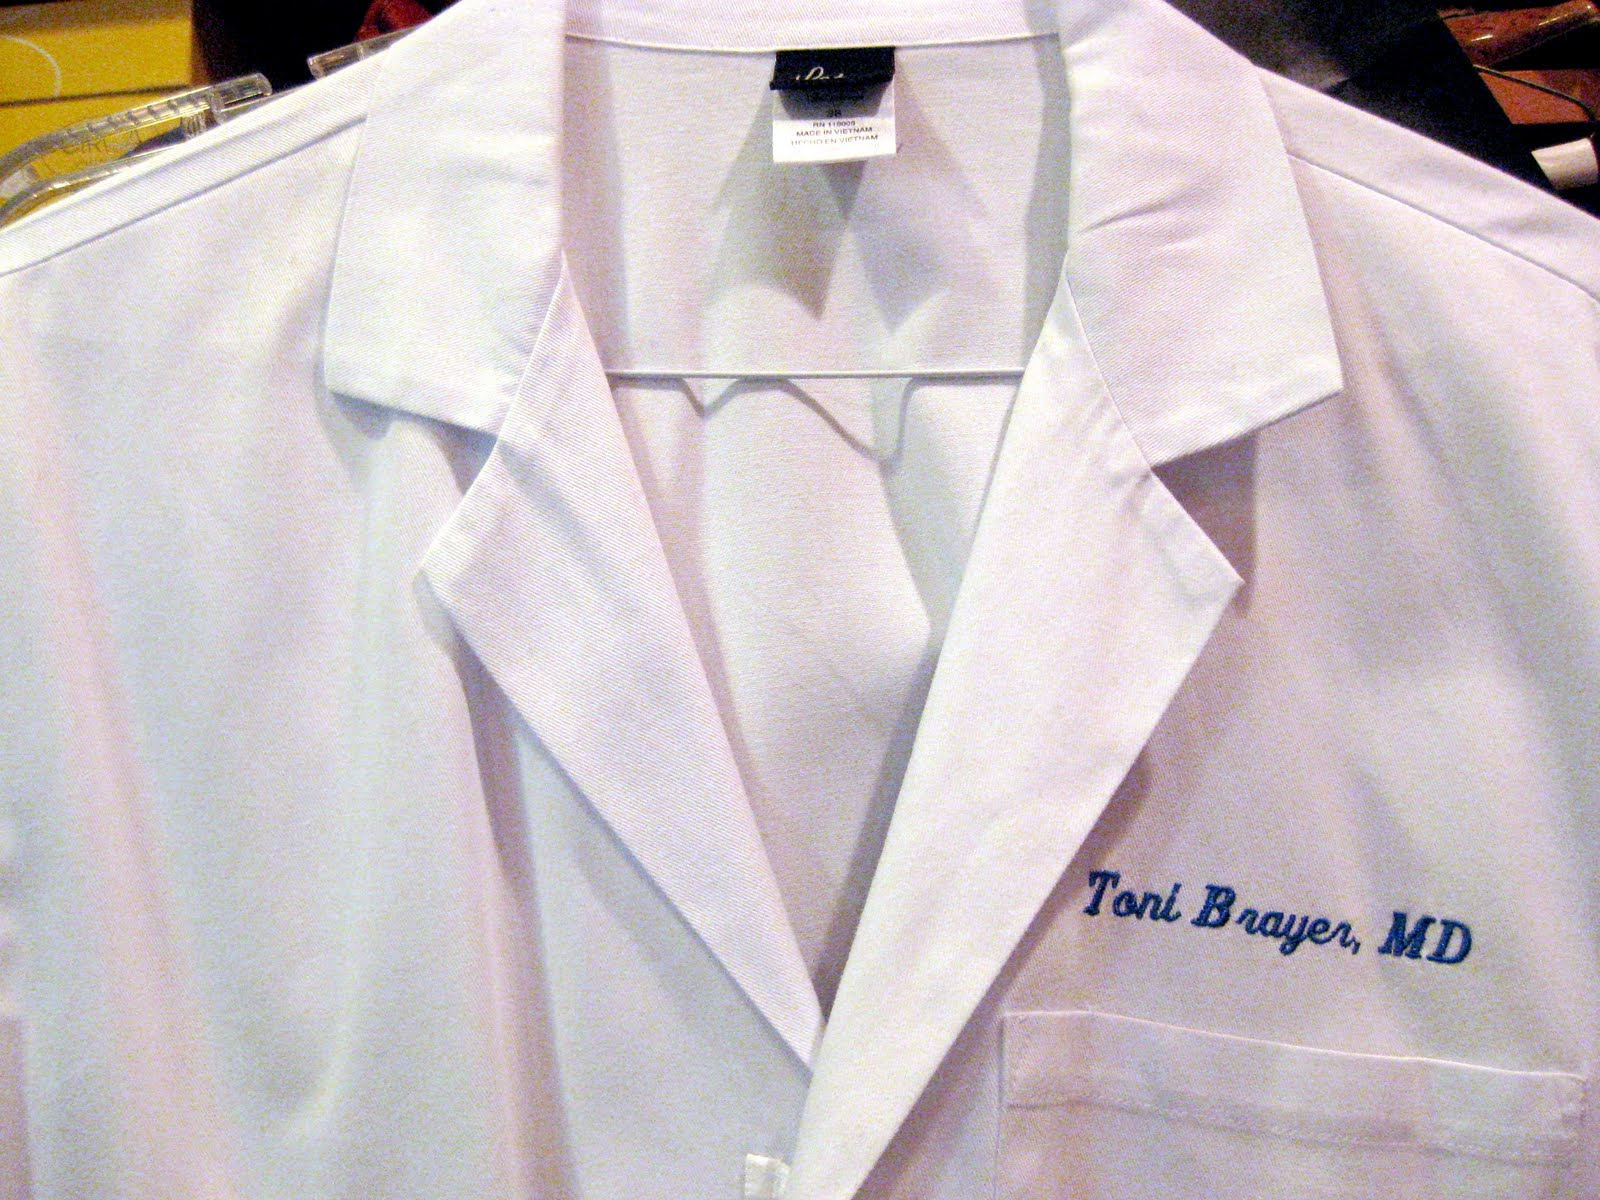 Should Physicians Wear White Coats? - Better Health - Better Health